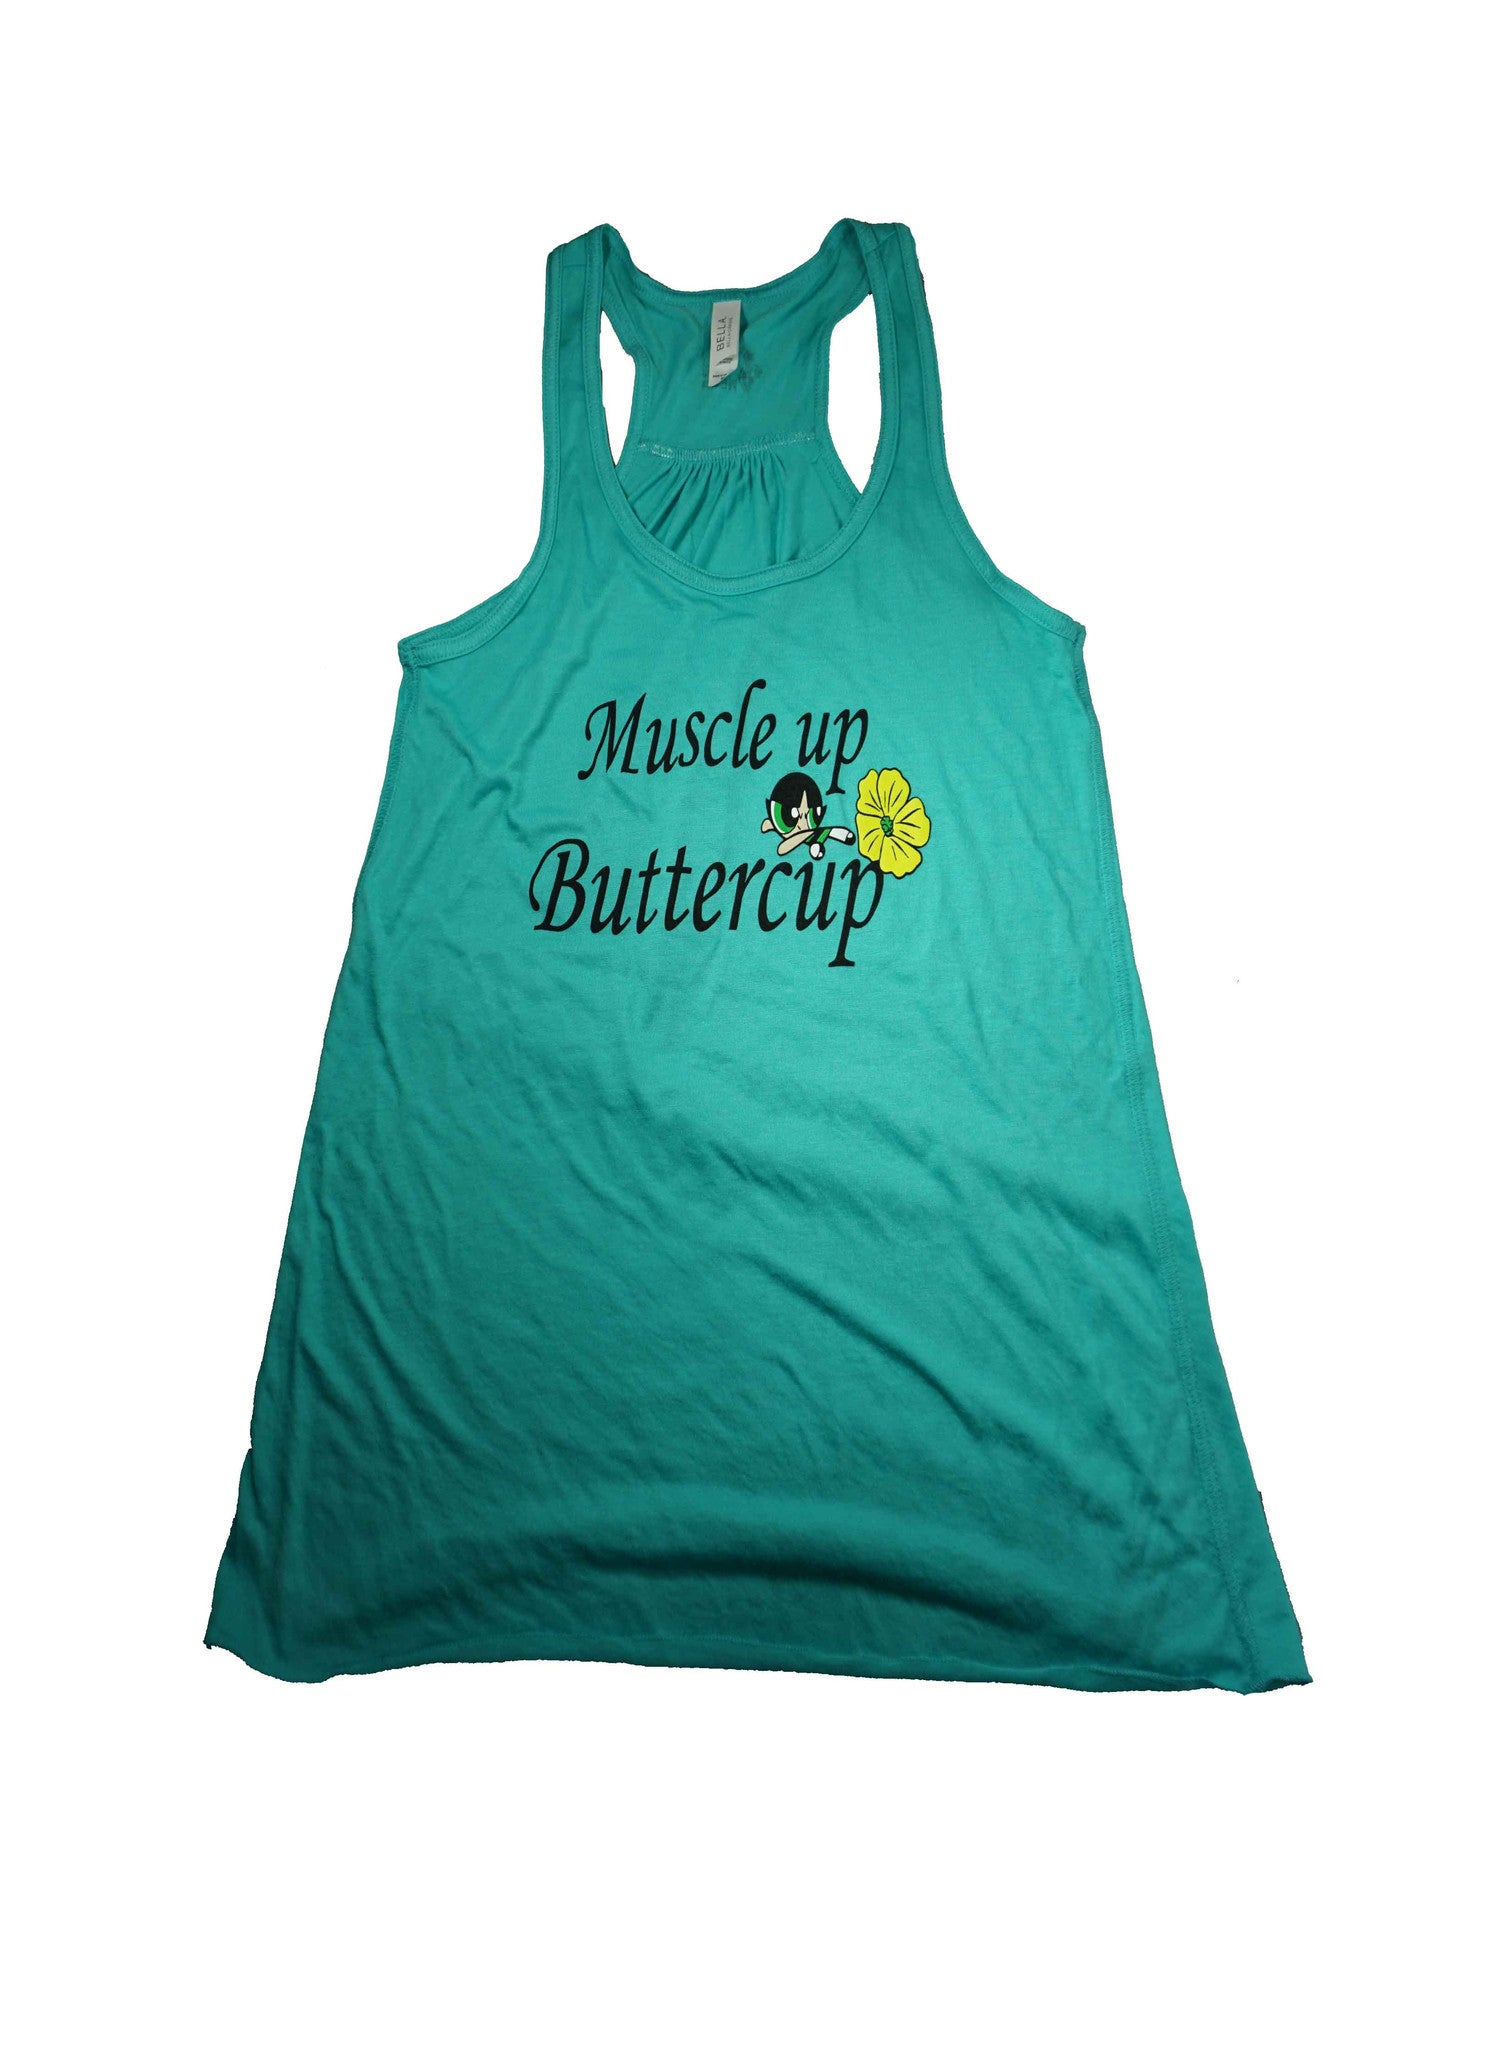 Muscle Up Buttercup - Tank Top